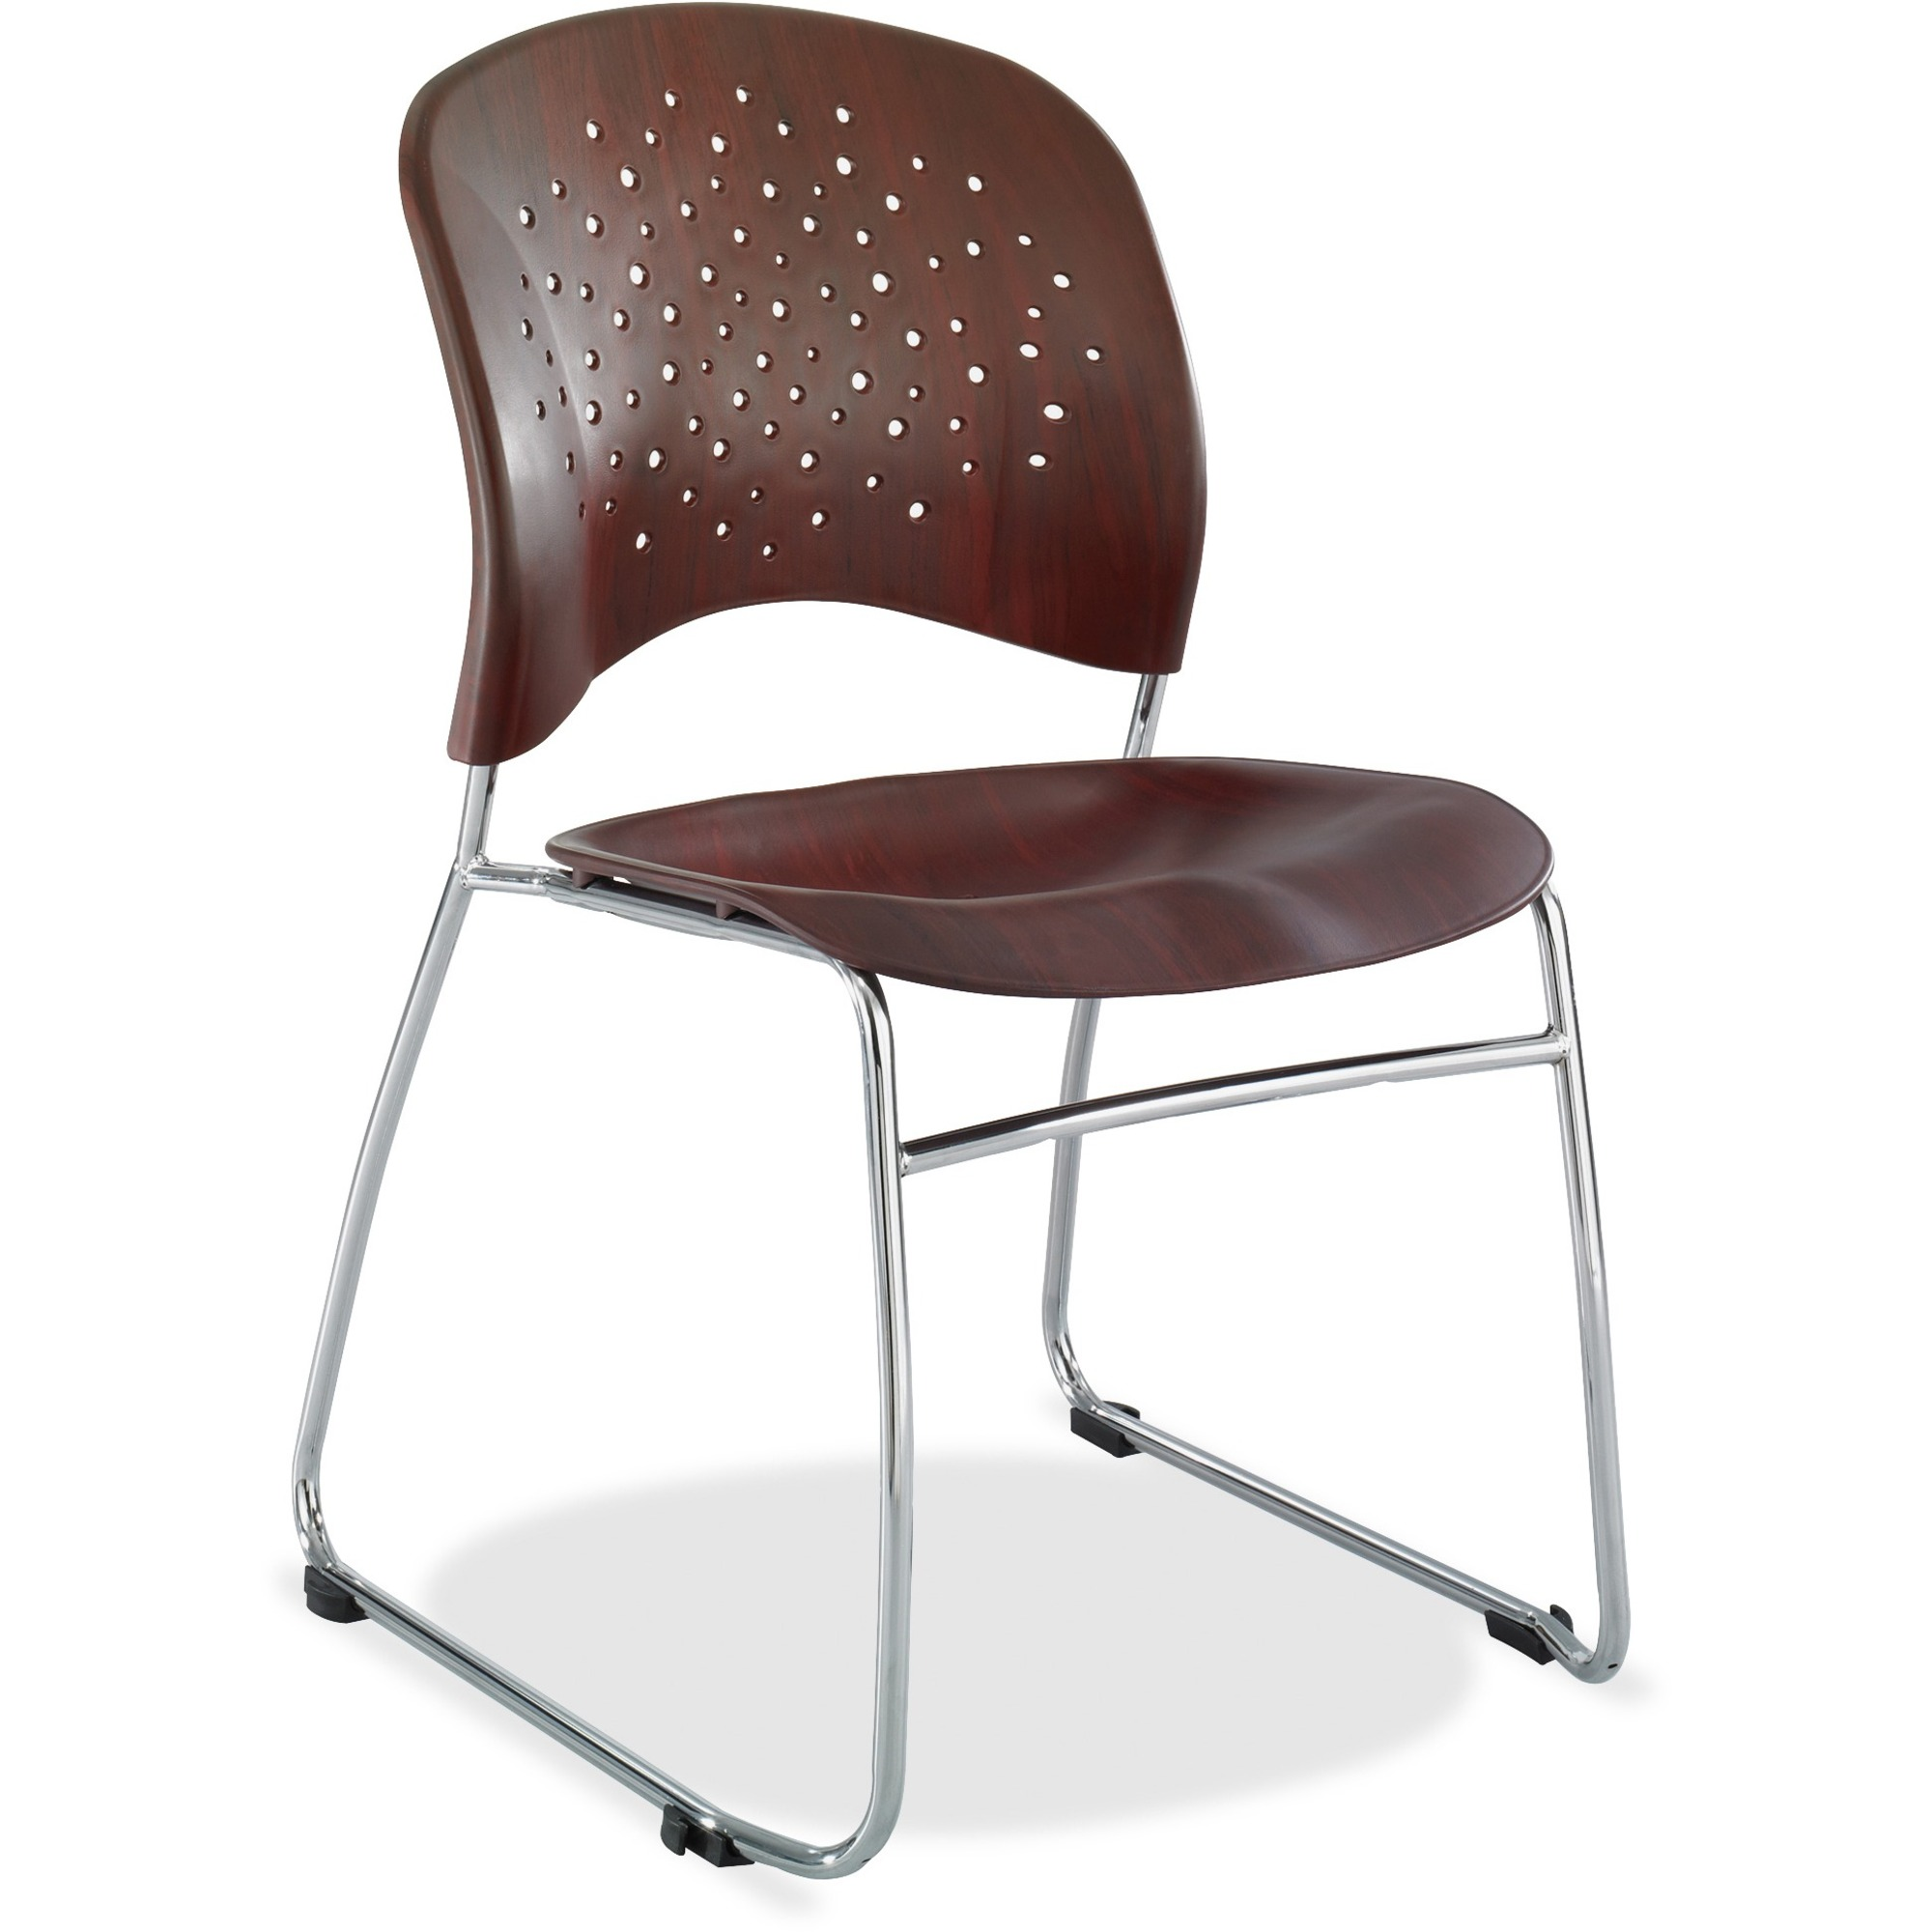 wood chair accessories alternative to covers for wedding west coast office supplies furniture chairs